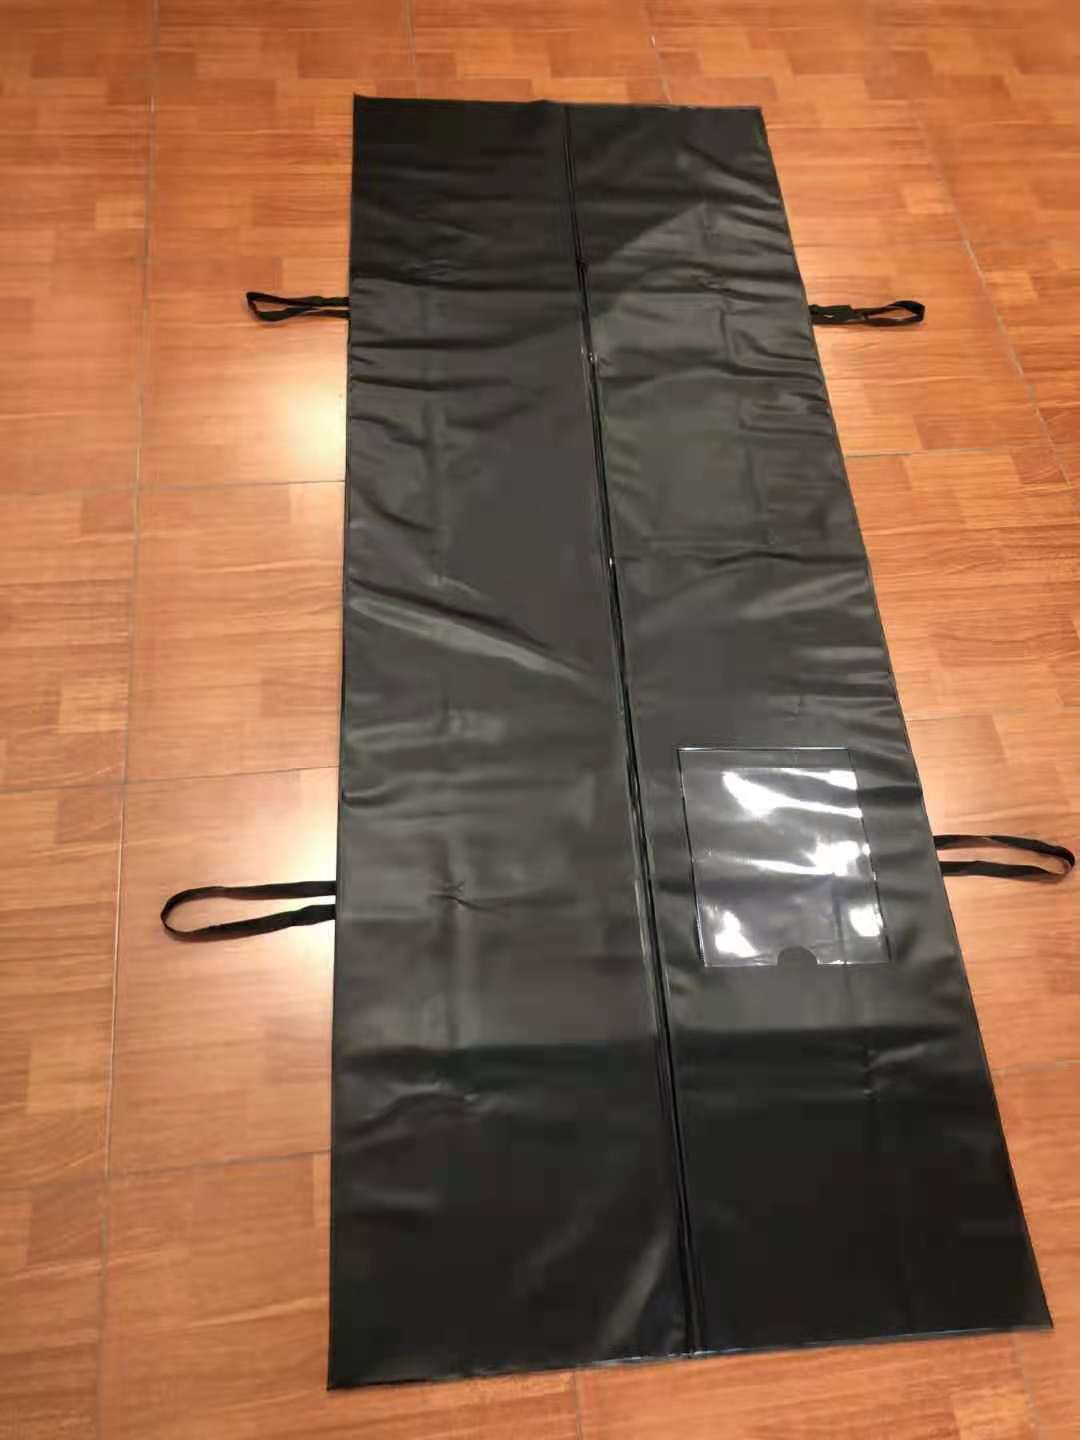 PVC Corpse Cadaver Body Bags for Dead Bodies